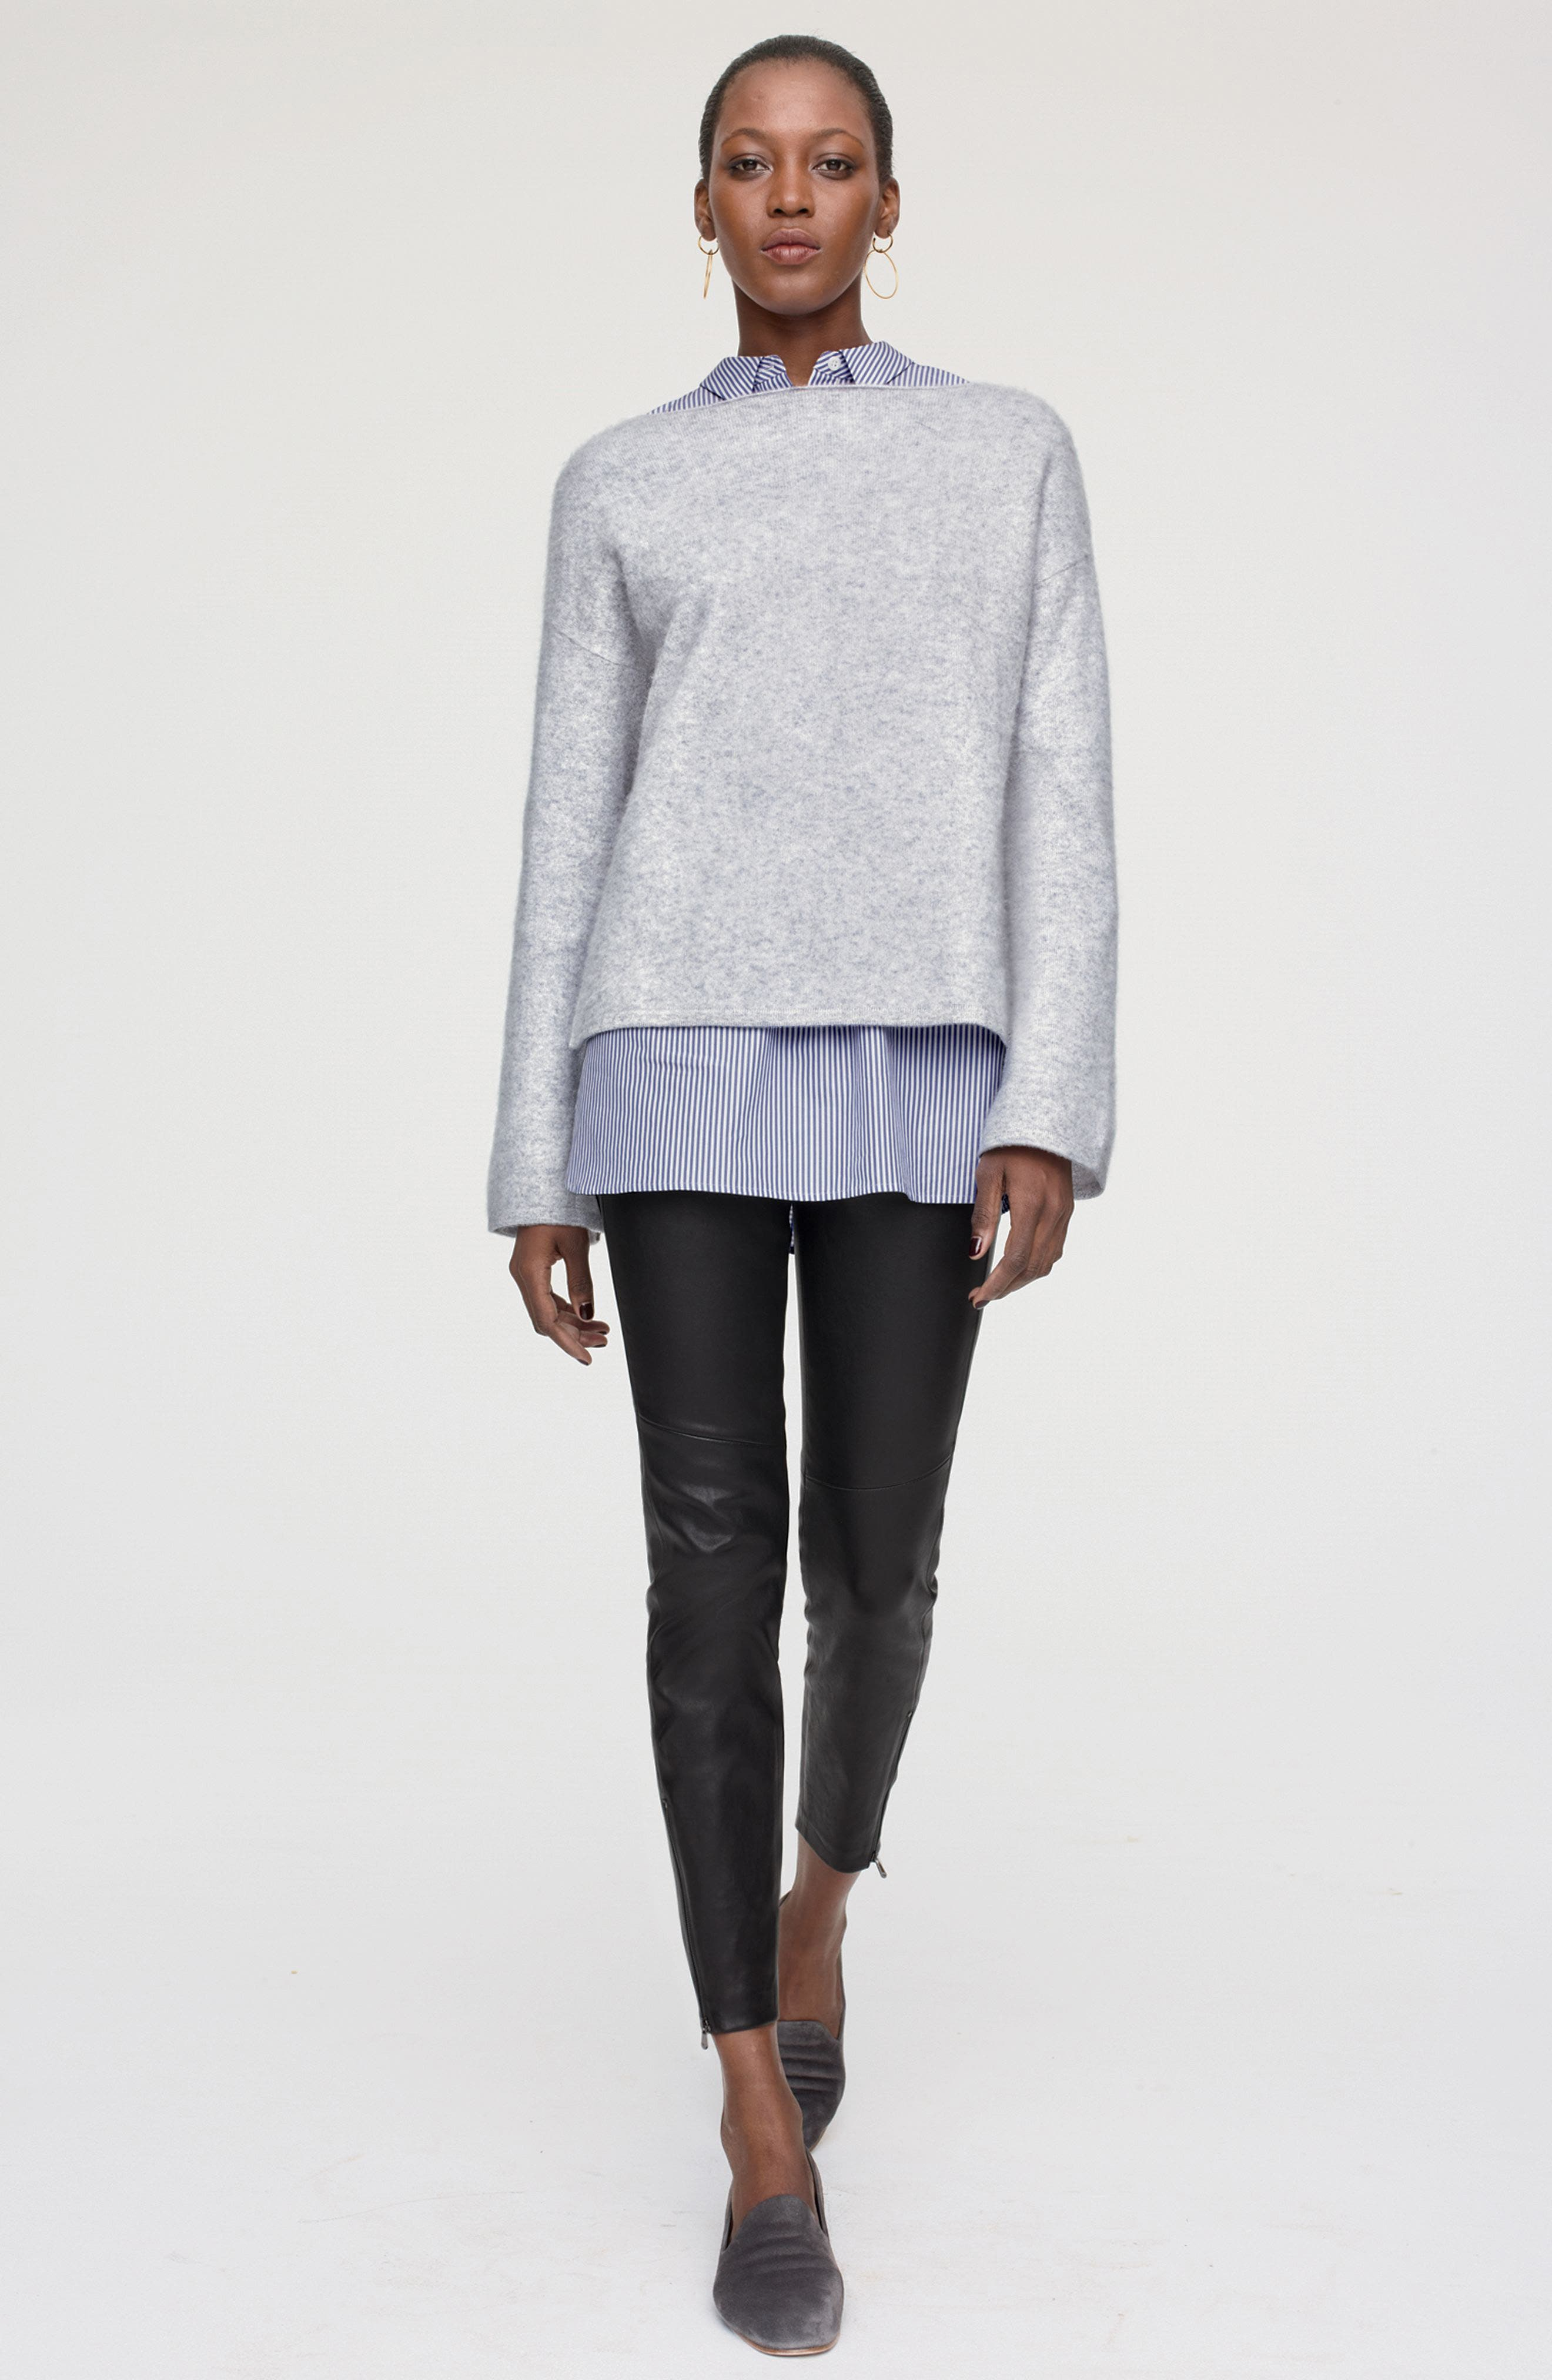 Nordstrom Signature Pullover, Shirt & Leather Pants Outfit with Accessories